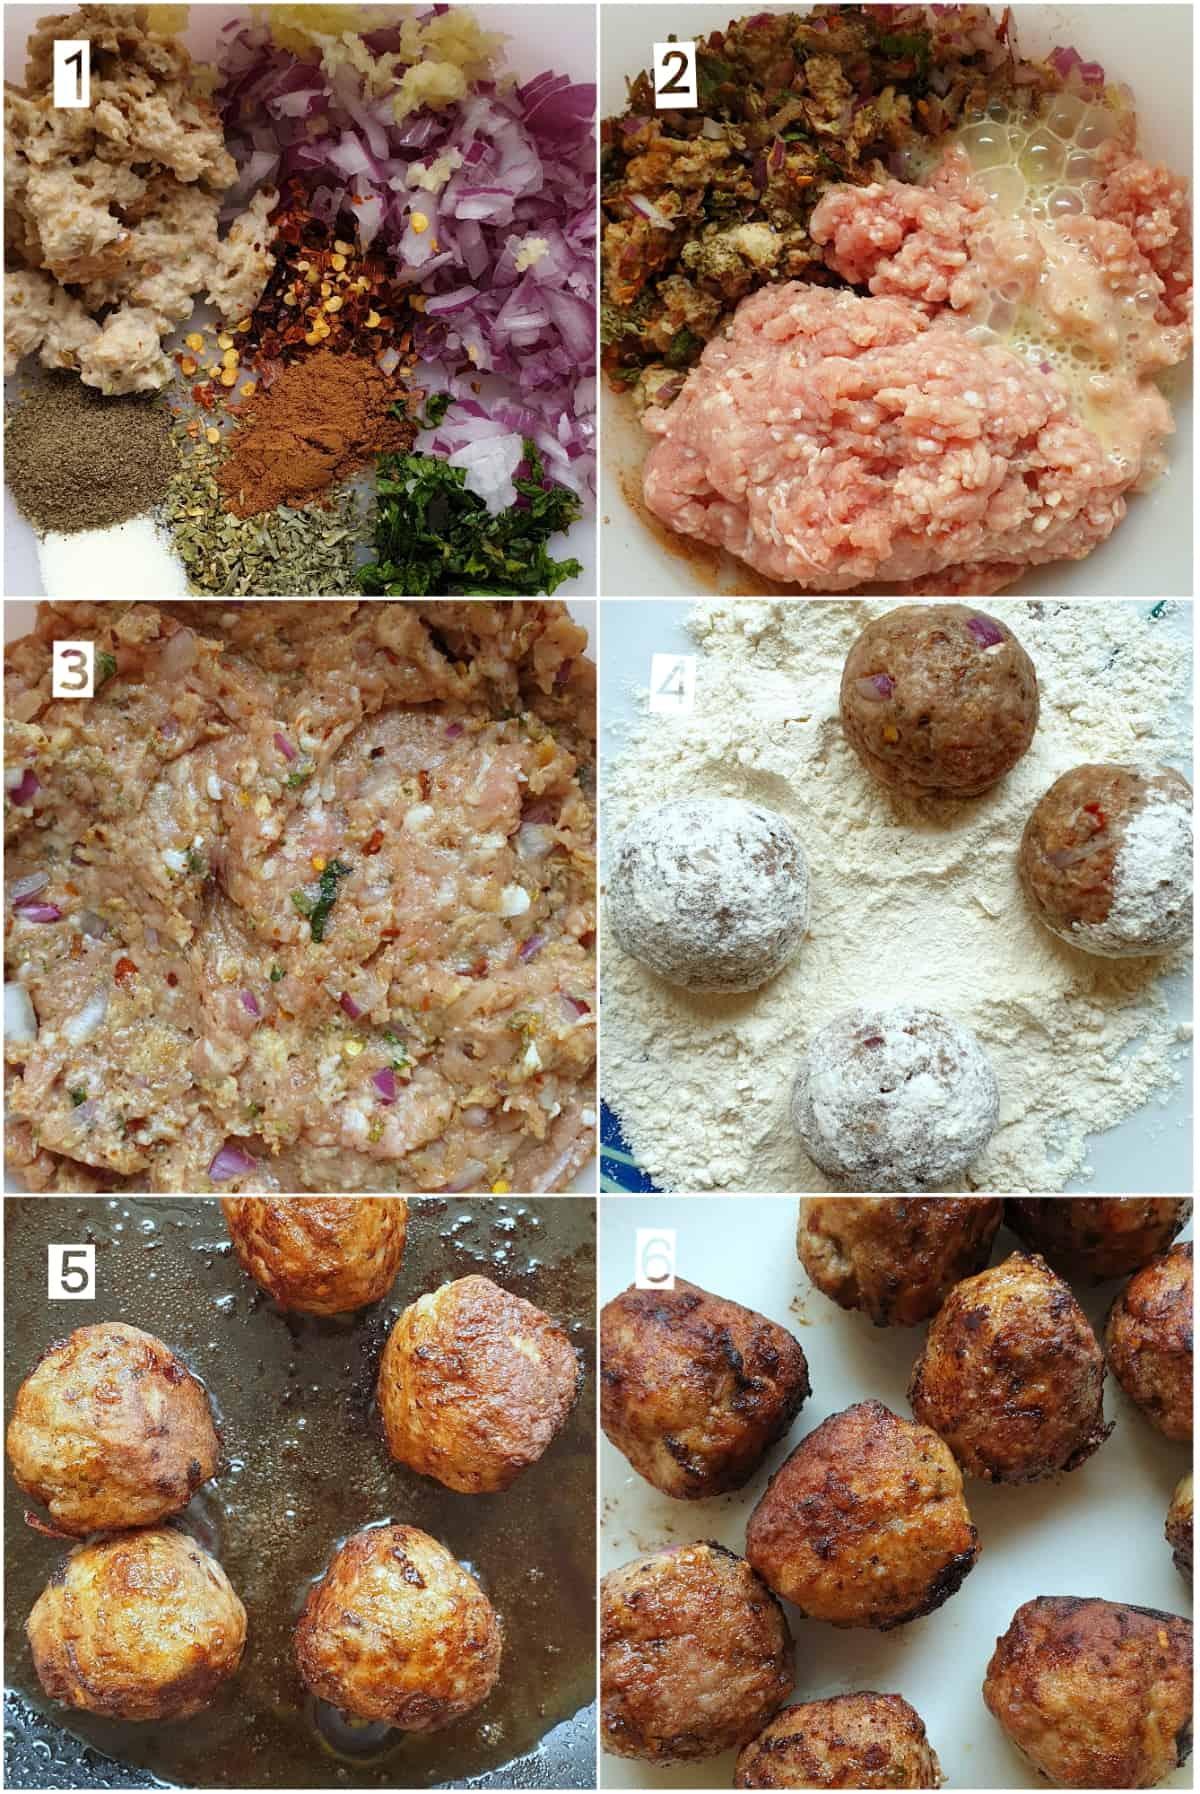 Step by step instructions of how to make greek meatballs (keftedes)